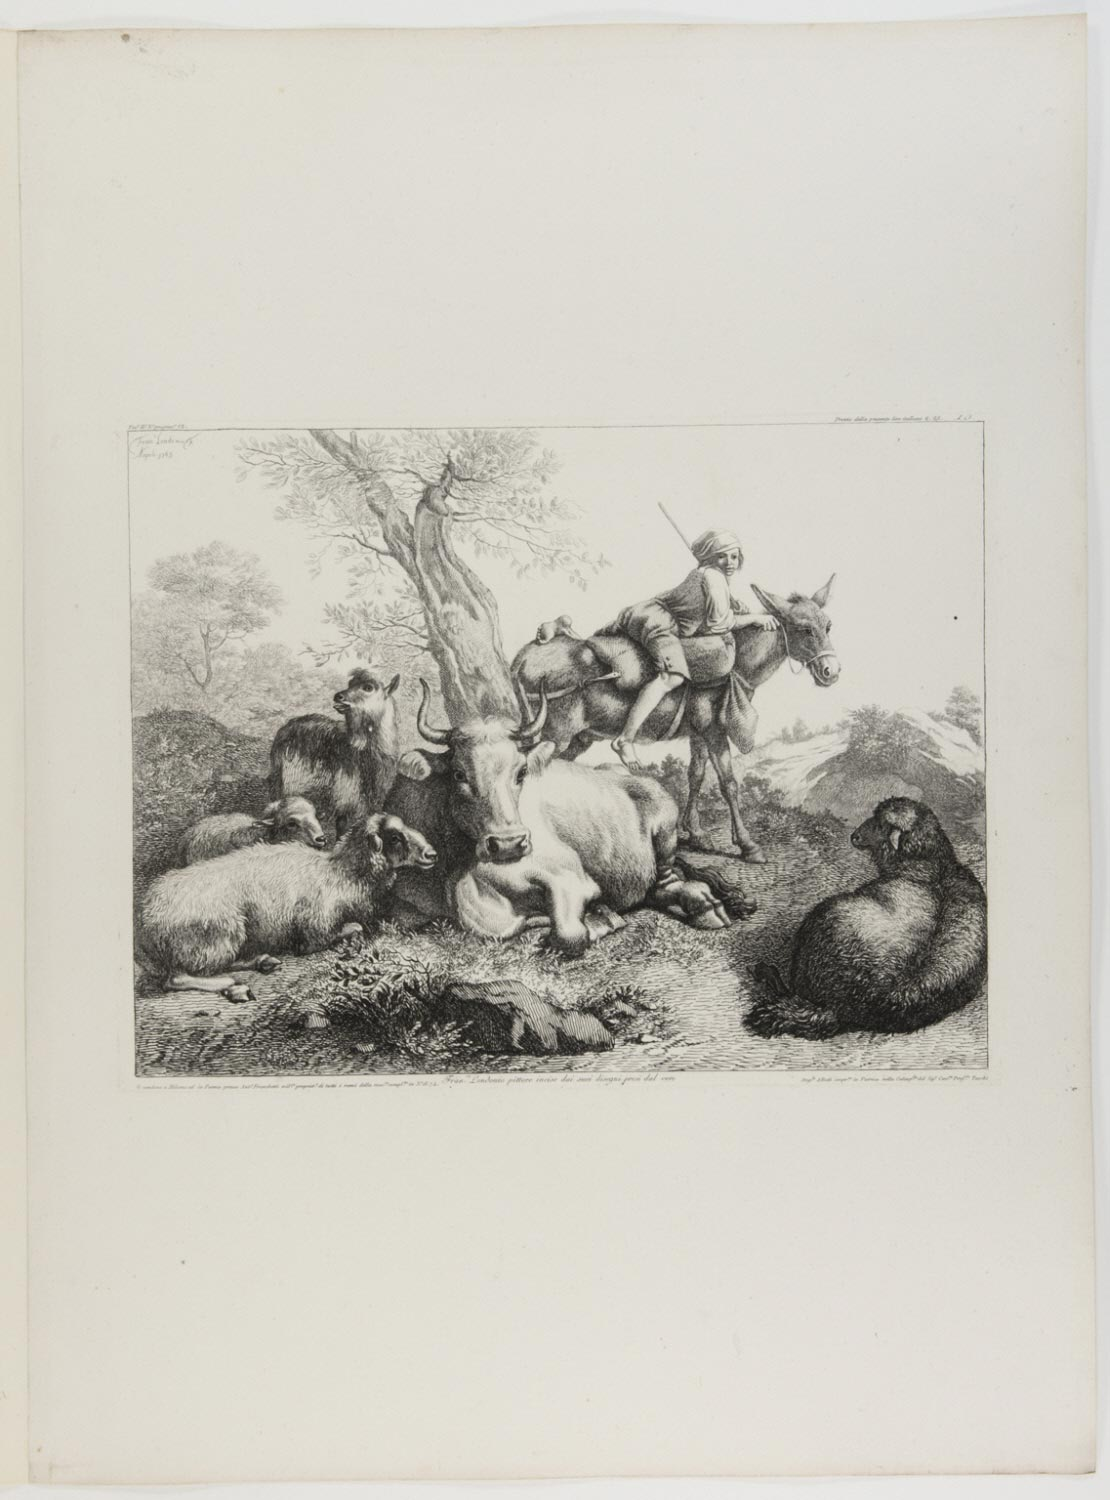 Boy on a Donkey Watching a Herd